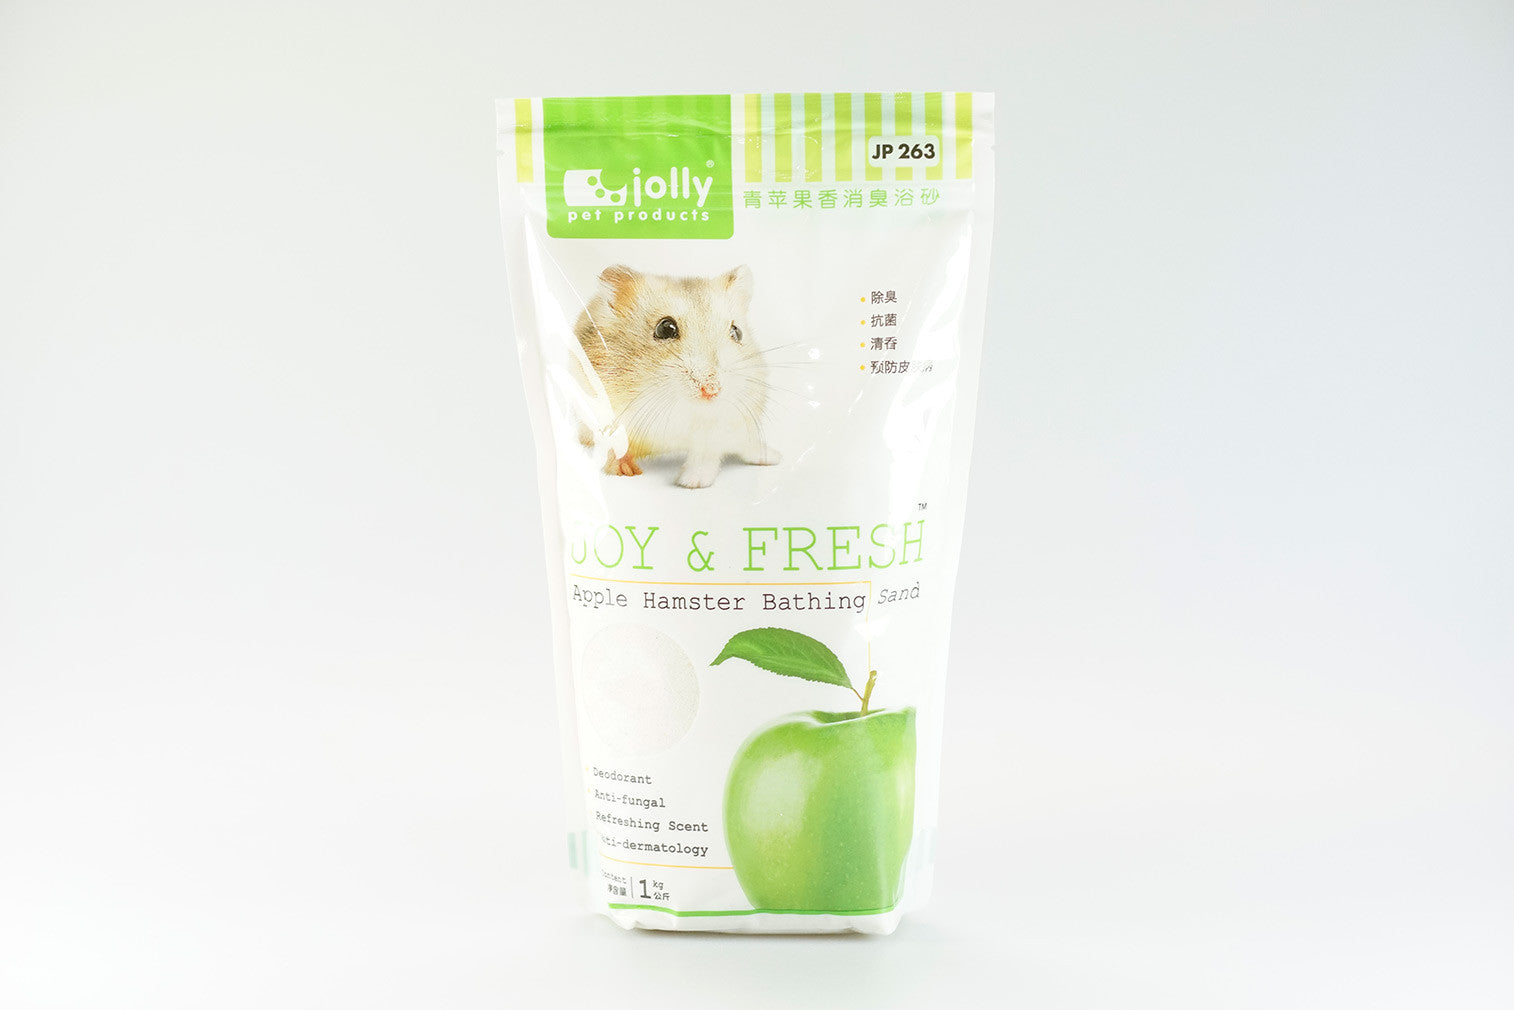 Jolly Joy & Fresh Hamster Bathing Sand